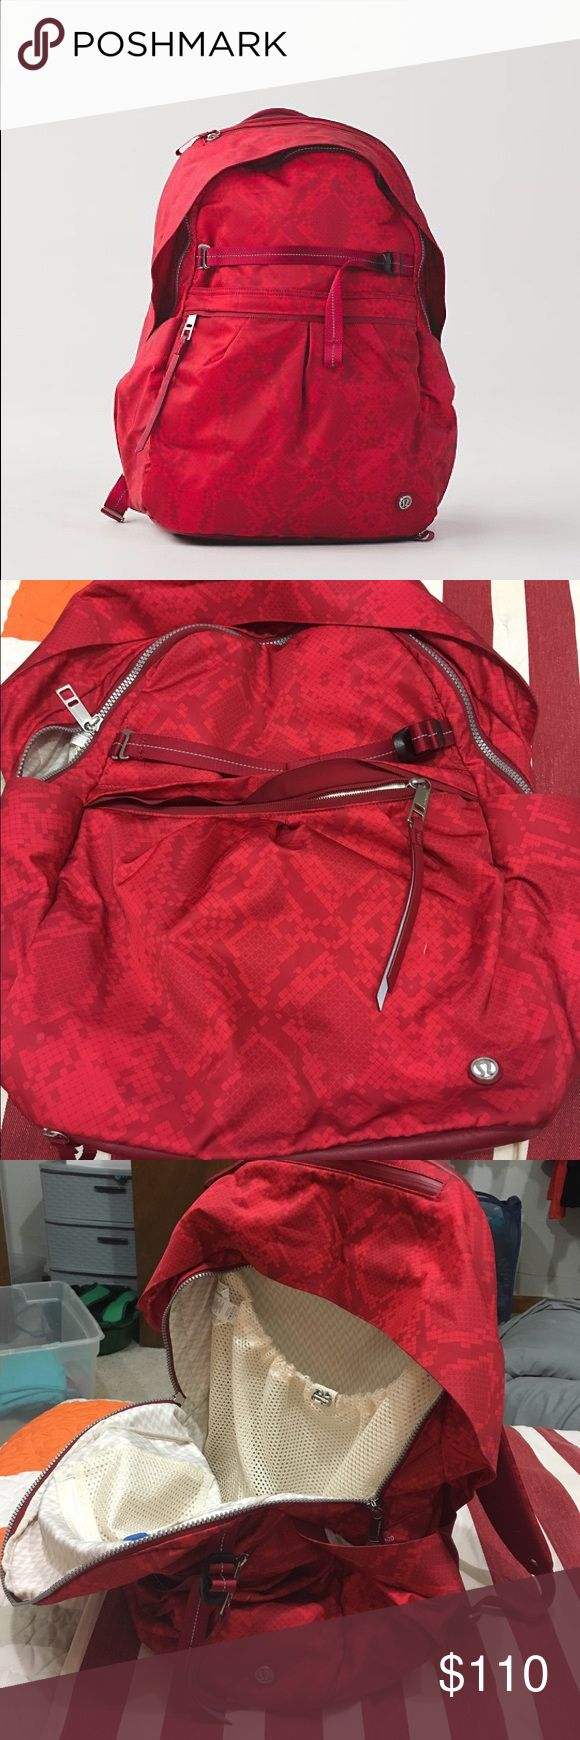 Lululemon Red Backpack Red lululemon backpack. Several pockets for all your fitness needs, including a laptop pouch! lululemon athletica Bags Backpacks